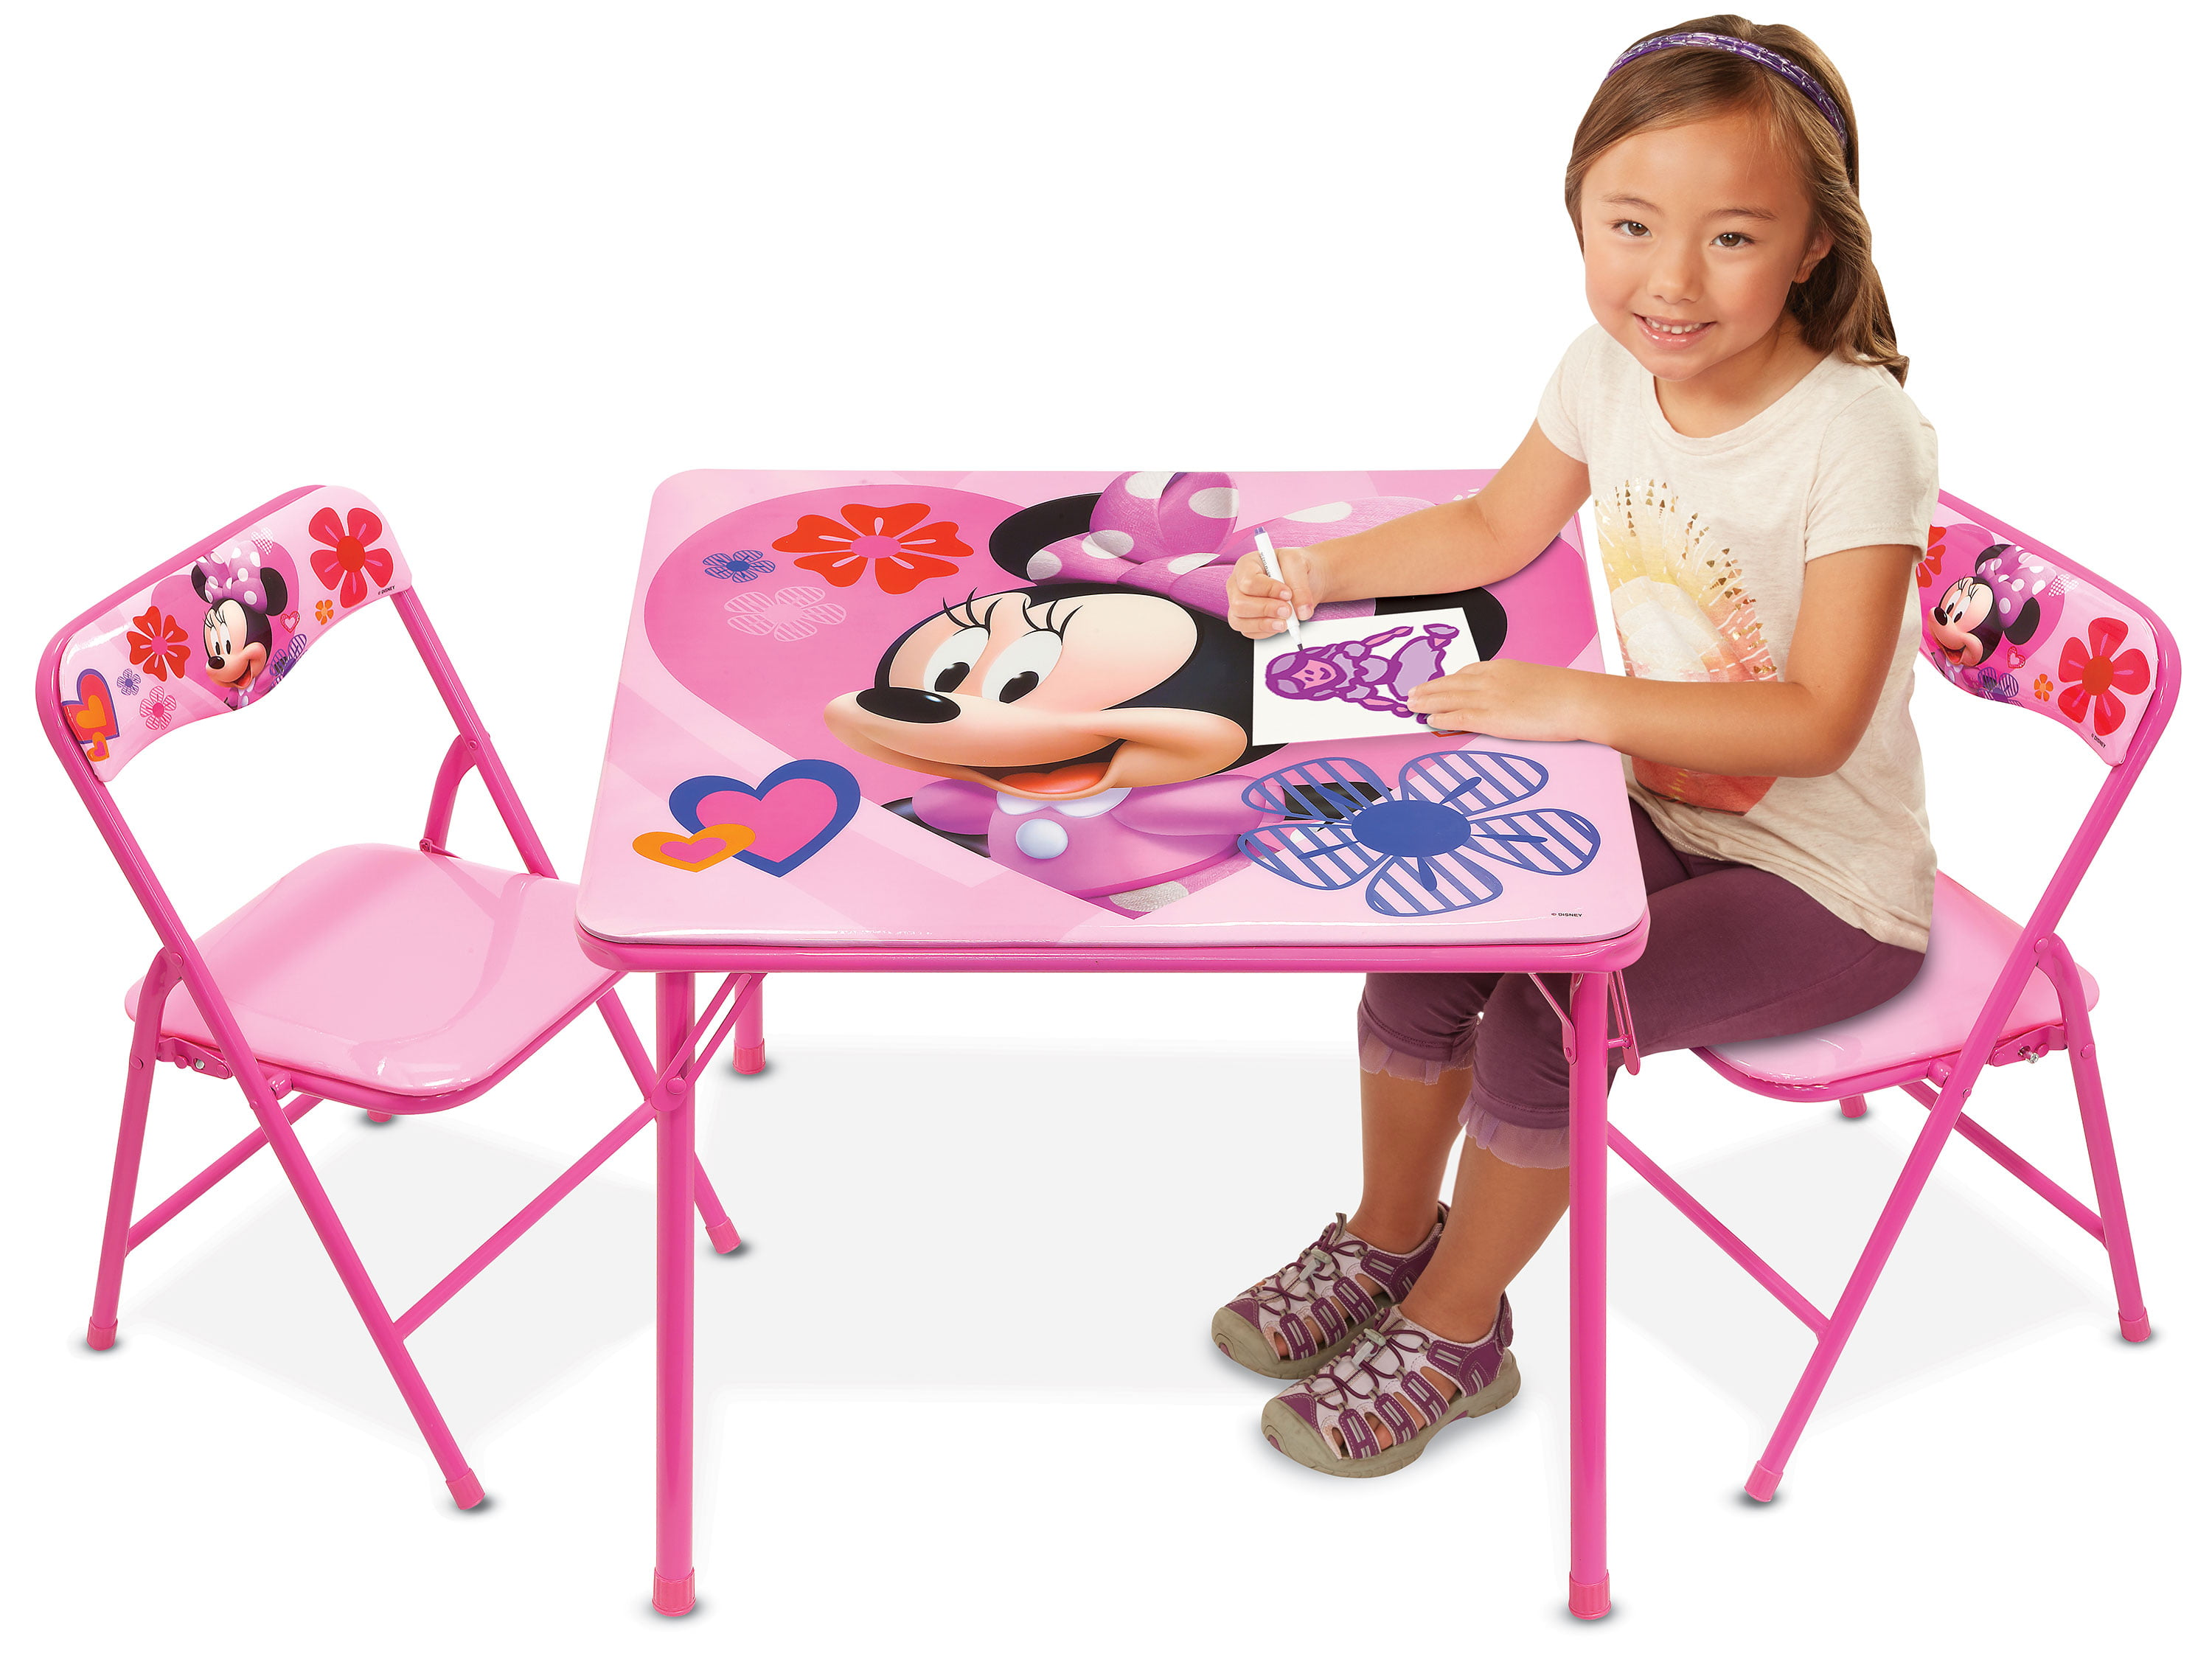 Minnie Mouse Happy Helpers Erasable Activity Table and Chairs Playset by Jakks Pacific